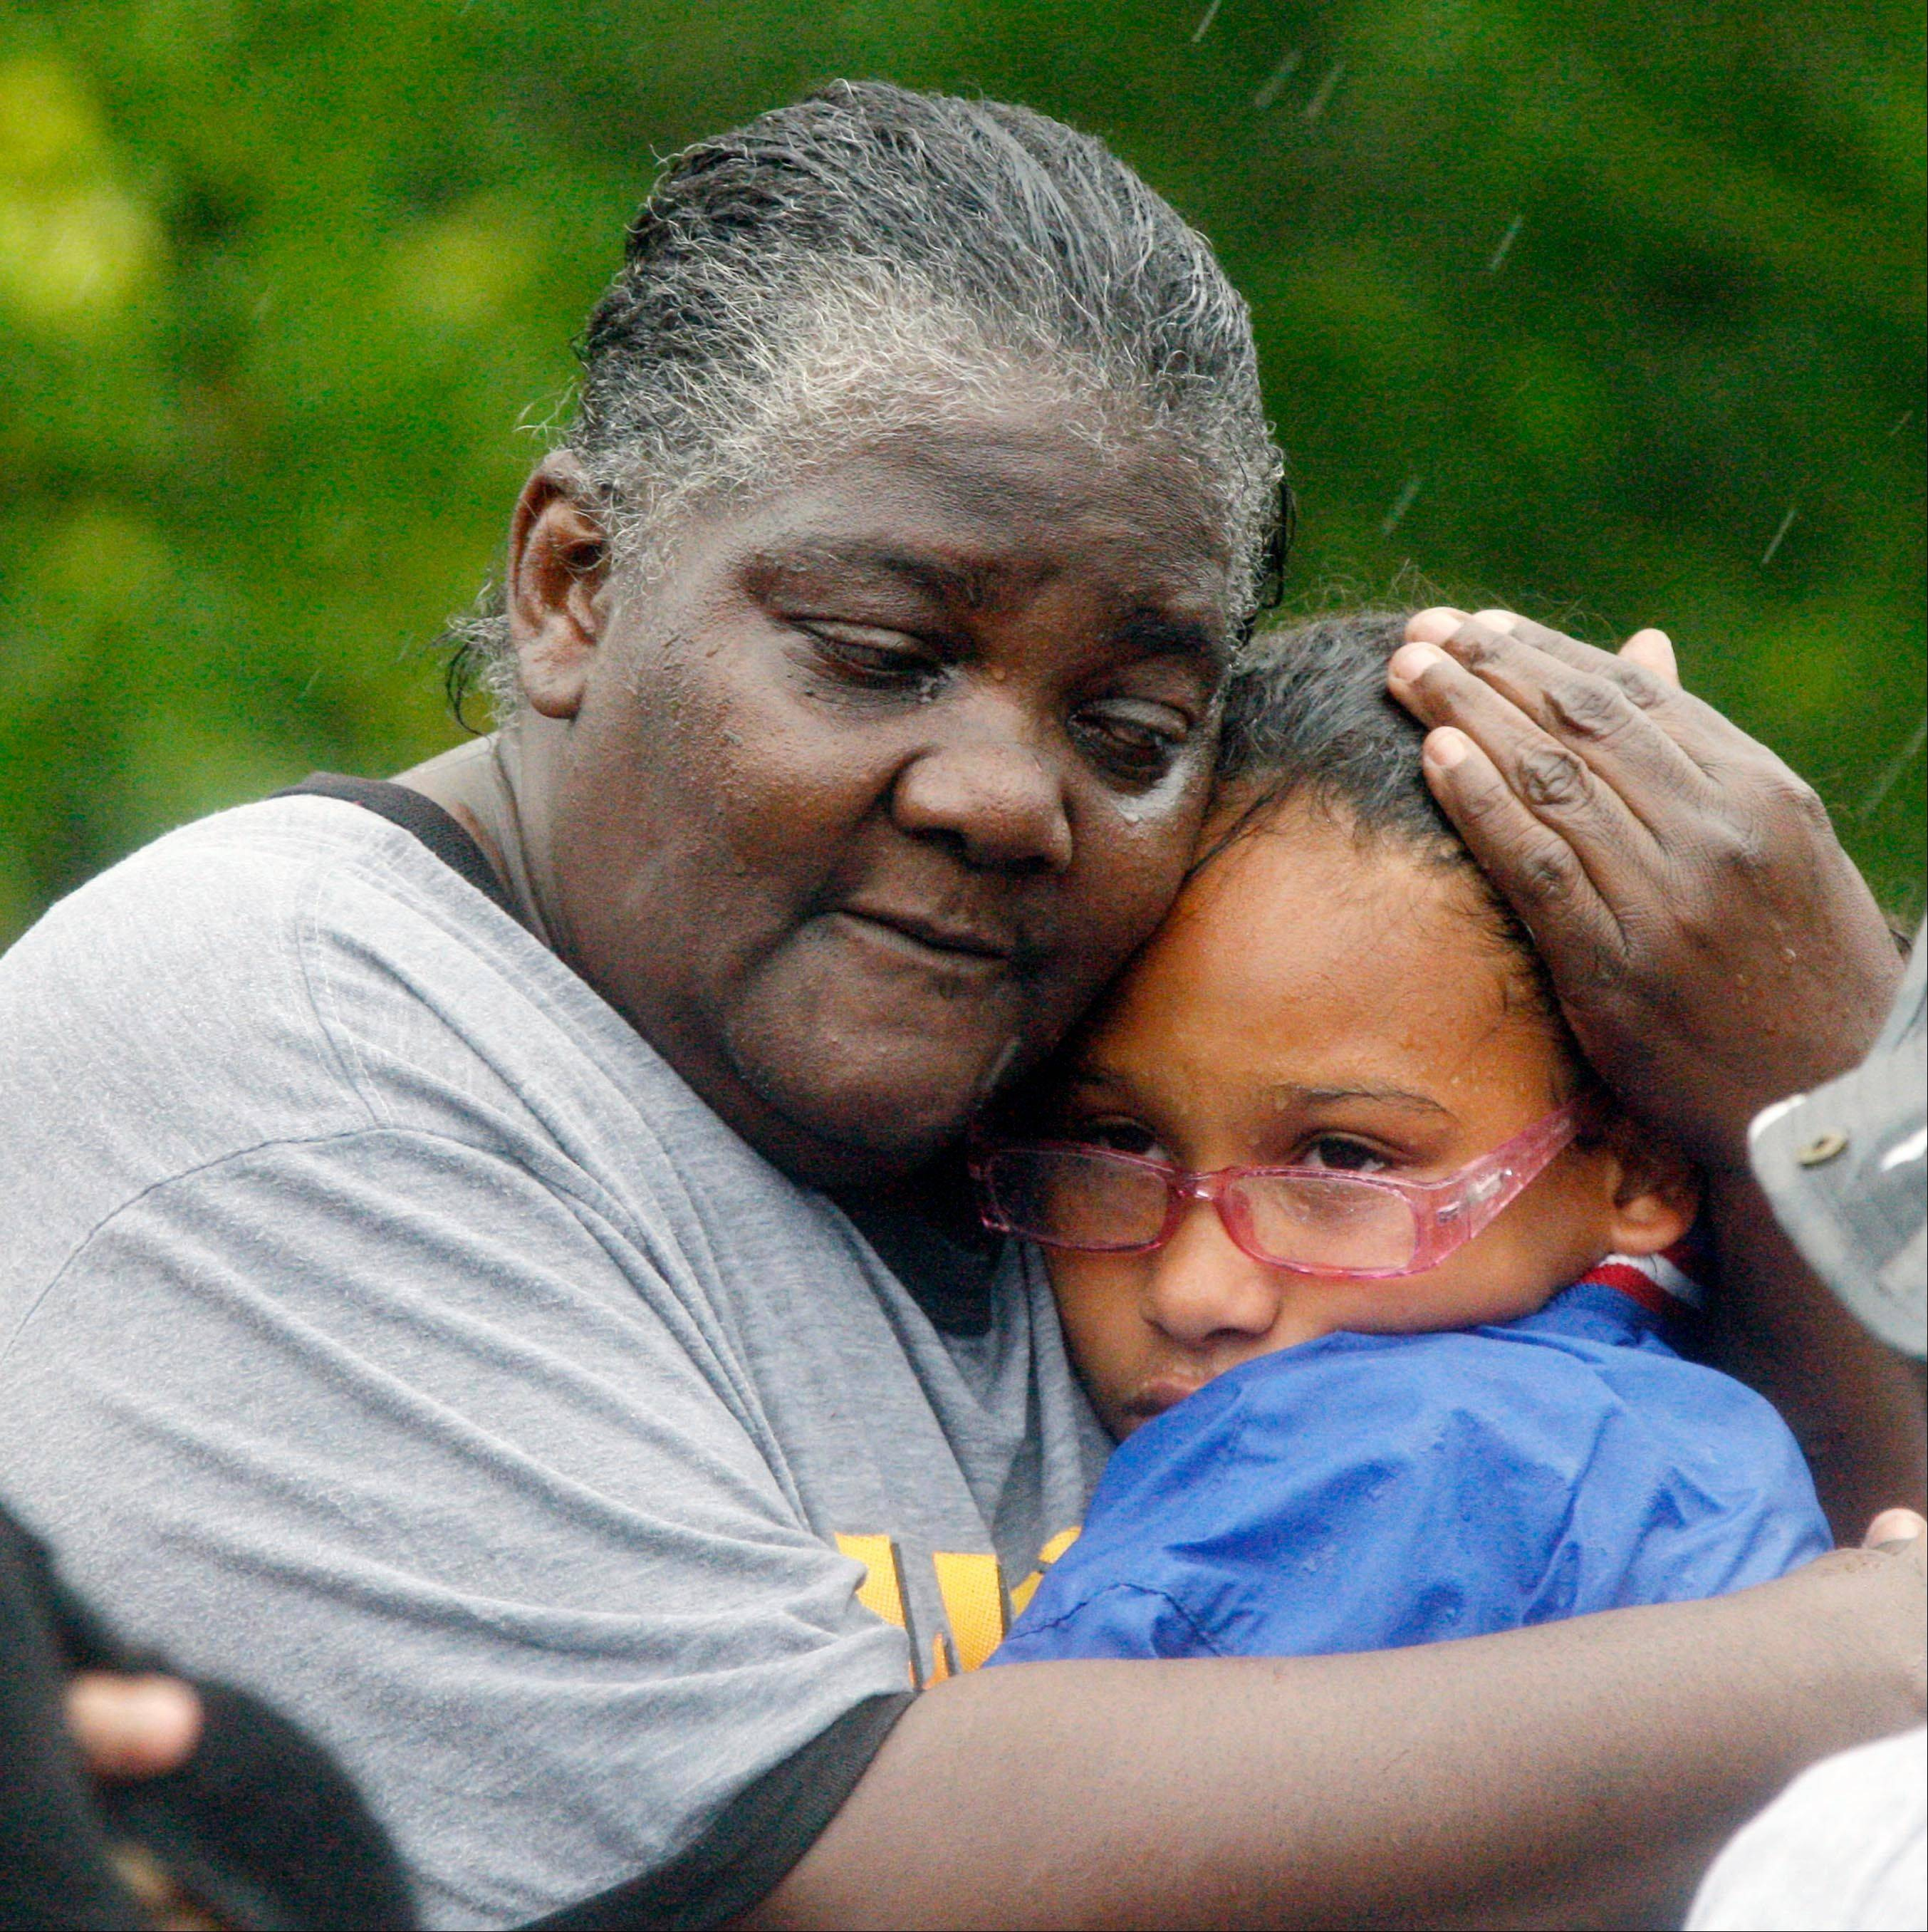 Danessa Lee, left, comforts her granddaughter Ashanti Lee, 12, after their family was rescued in Pearlington, Miss., by law enforcement officers and first responders using boats, Wednesday, Aug. 29, 2012, during the nonstop rain from Isaac.